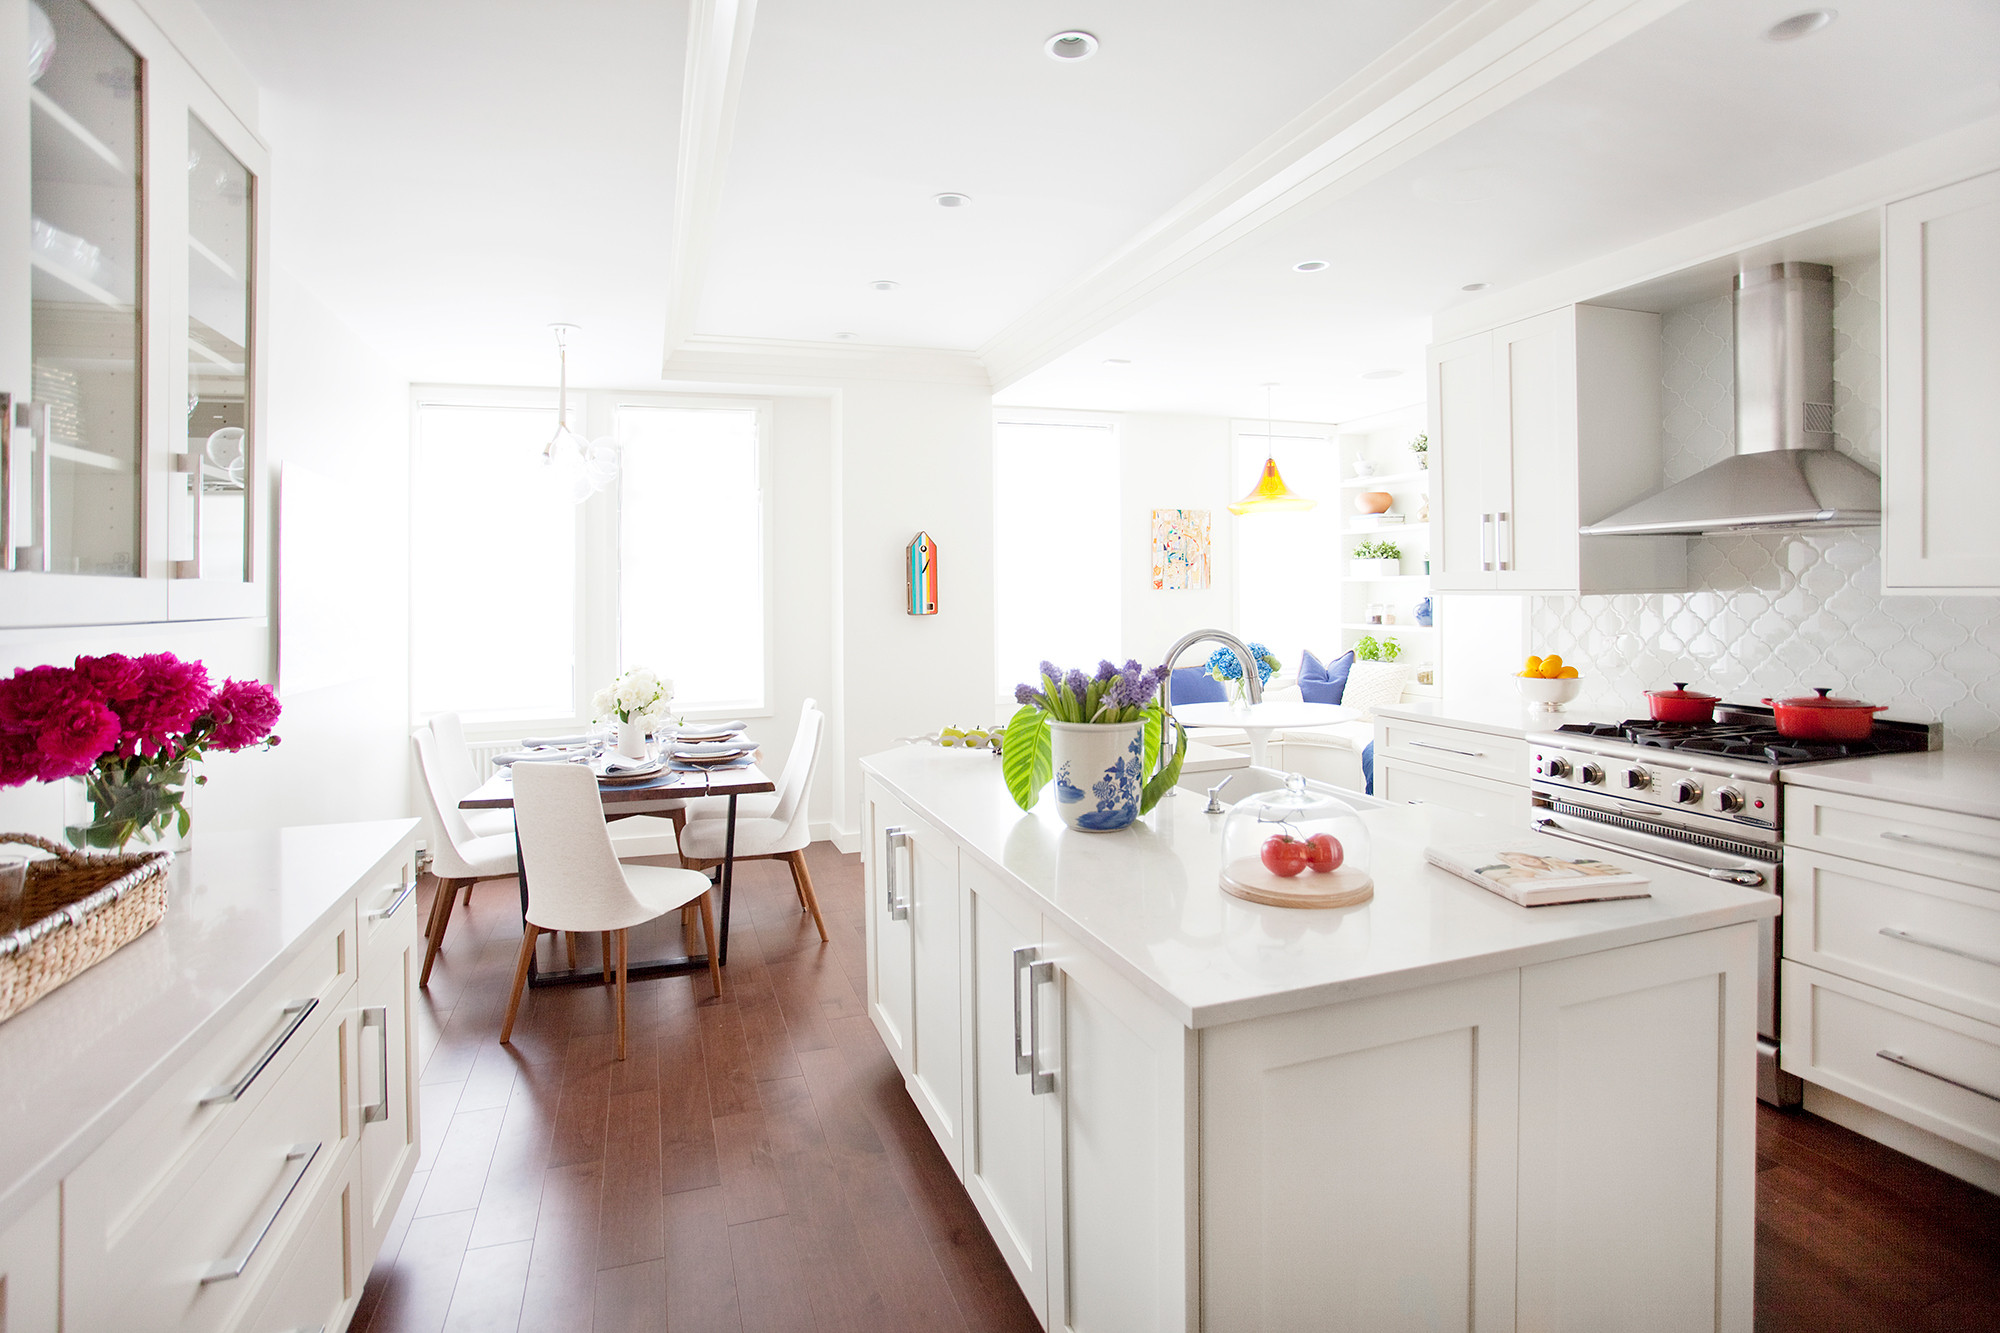 The newly revamped kitchen in a New York City apartment designed by Natalie Kraiem.